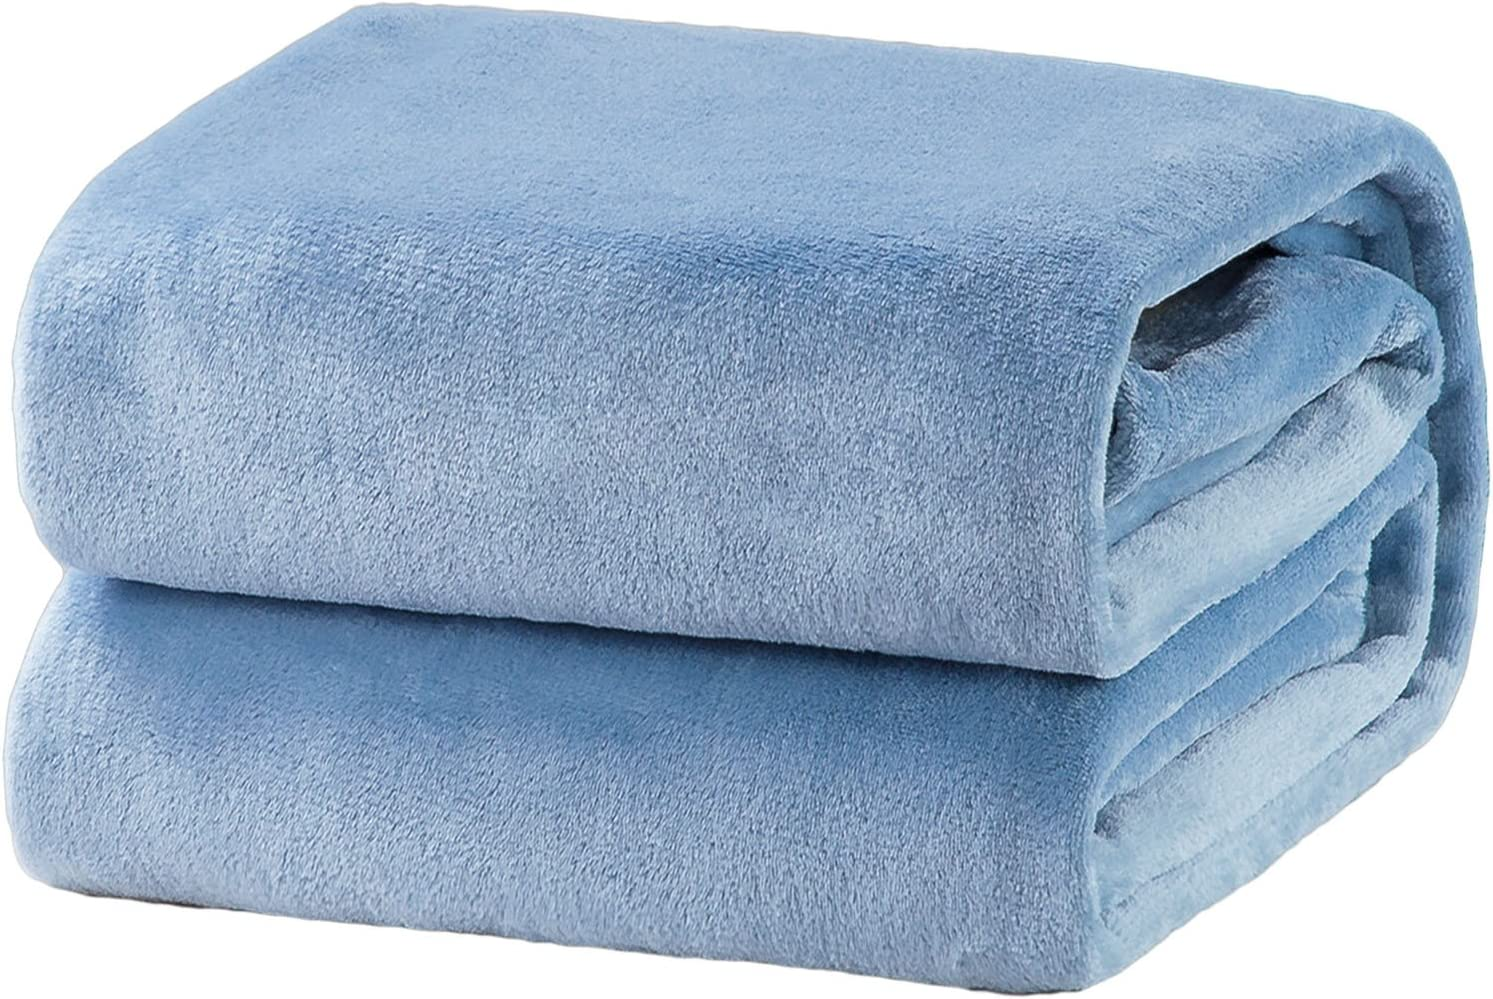 Bedsure Fleece Blanket King Size Washed Blue Lightweight Super Soft Cozy Luxury Bed Blanket Microfiber